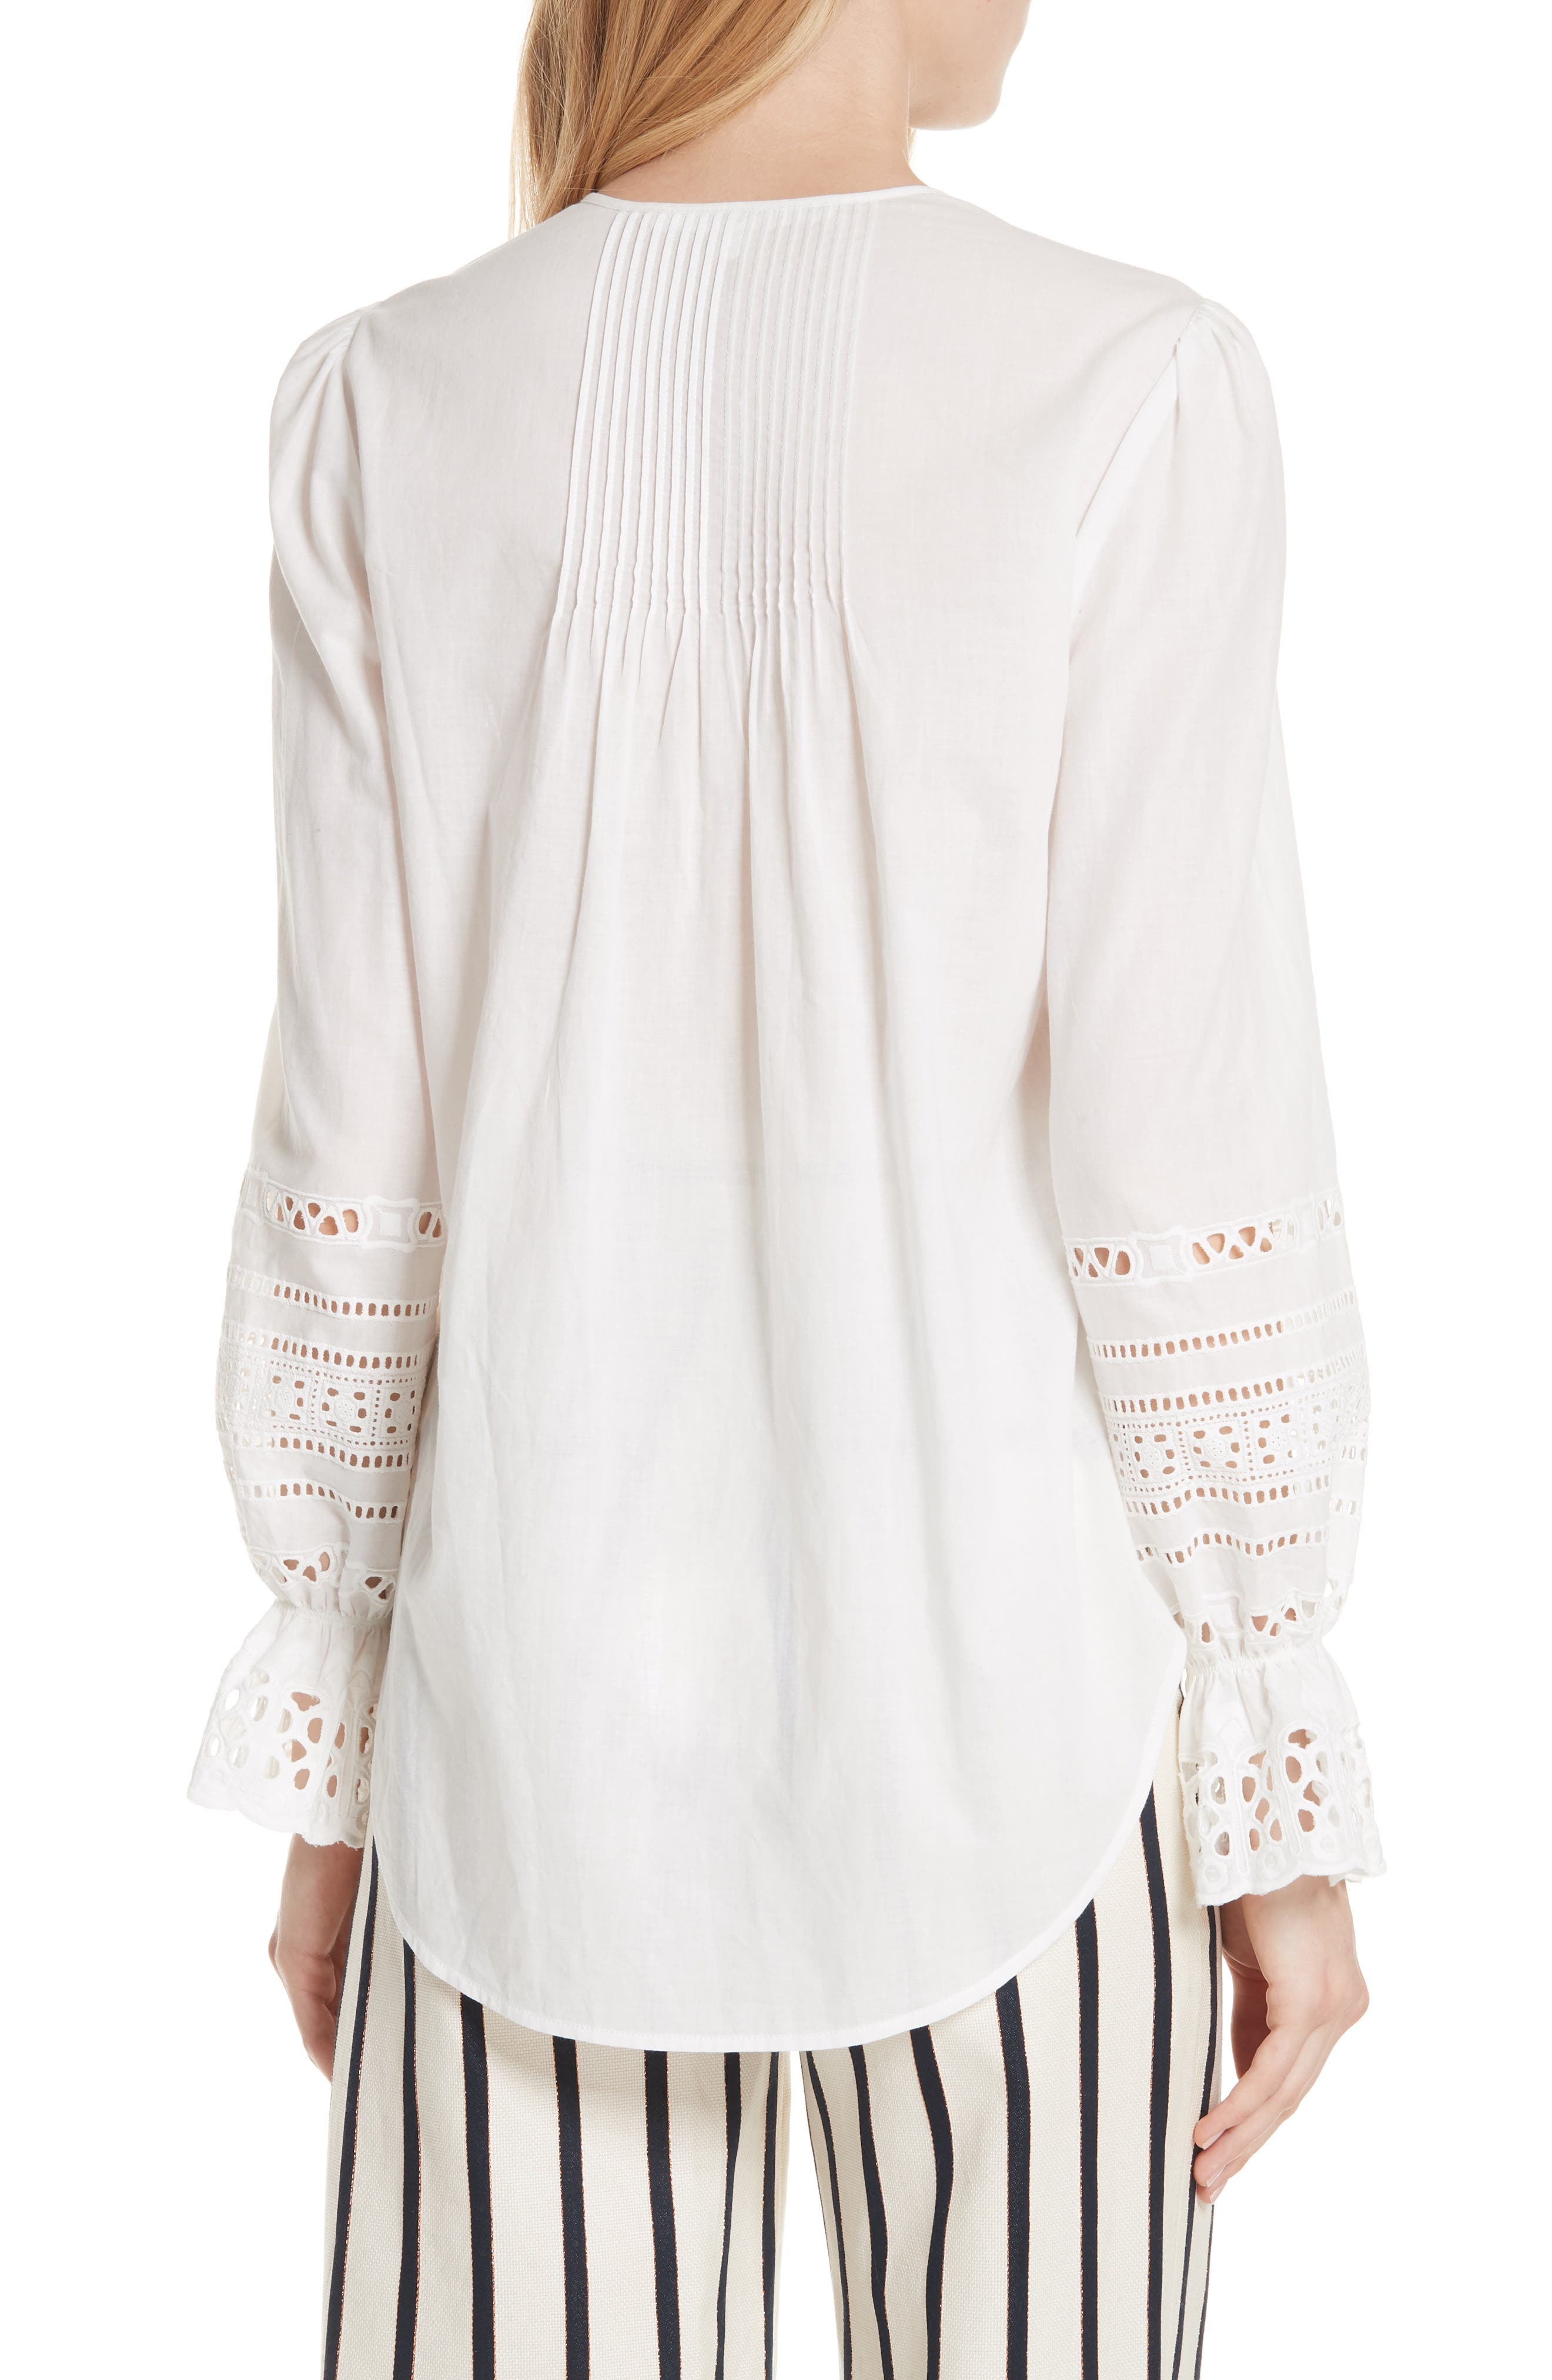 Mili Eyelet Sleeve Top,                             Alternate thumbnail 2, color,                             White